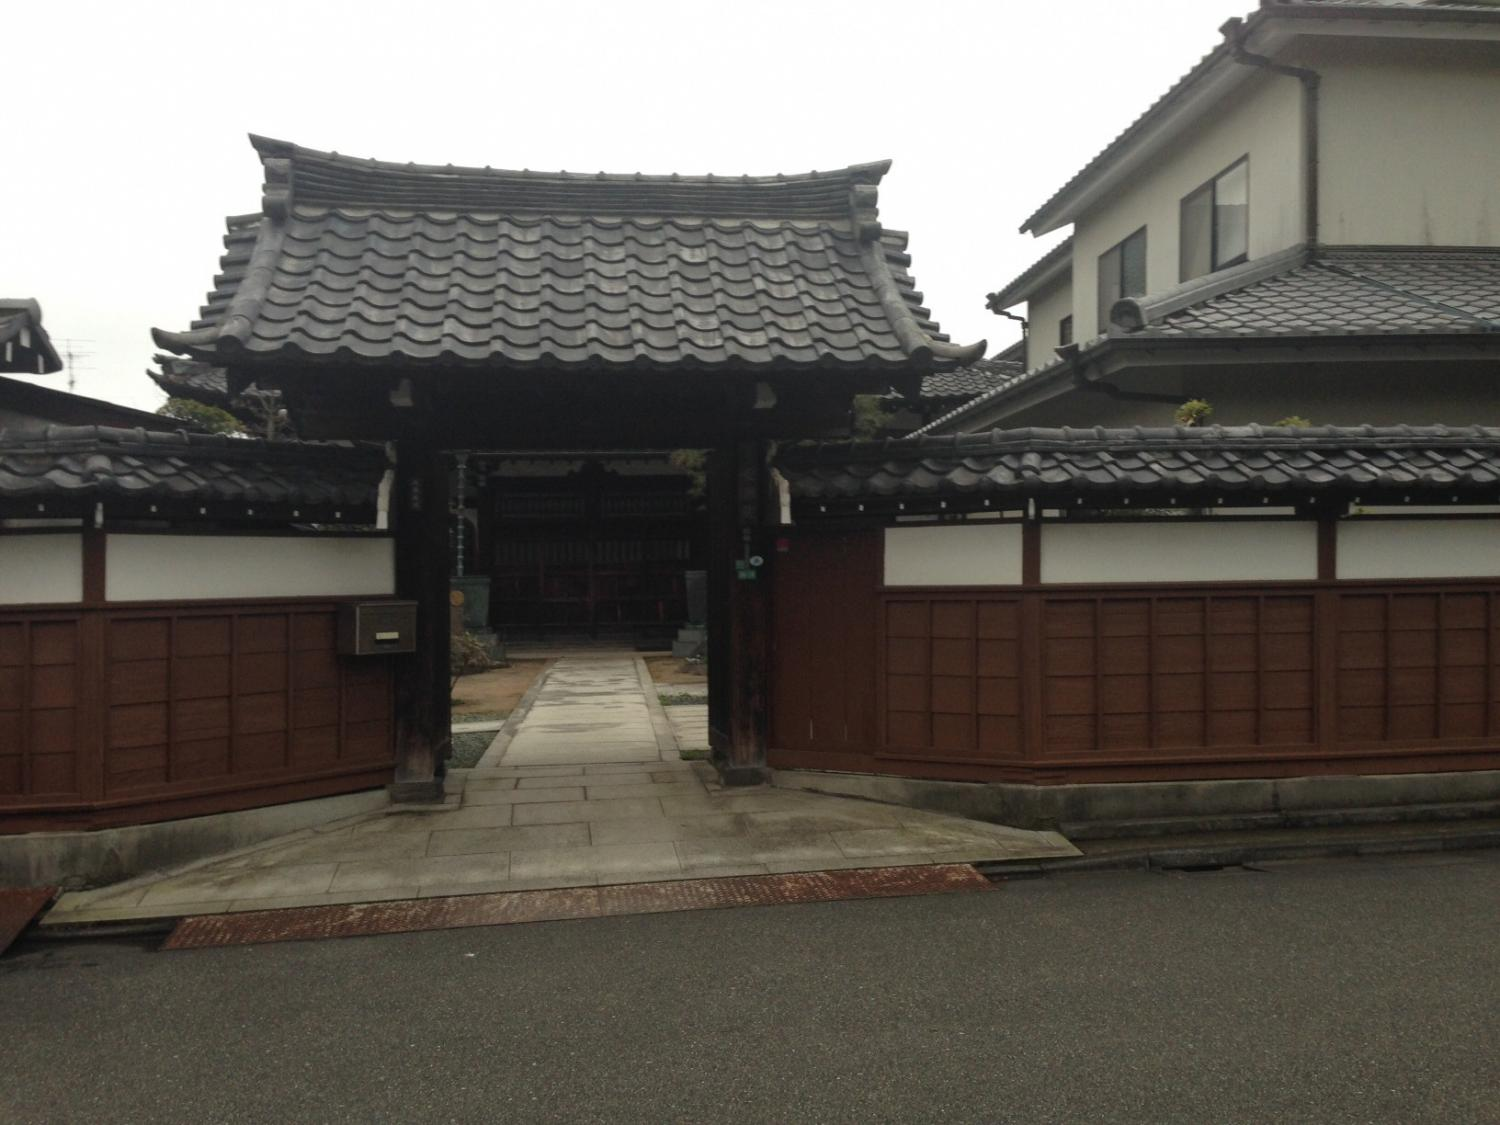 Temple image of the Jodo sect of Buddhism